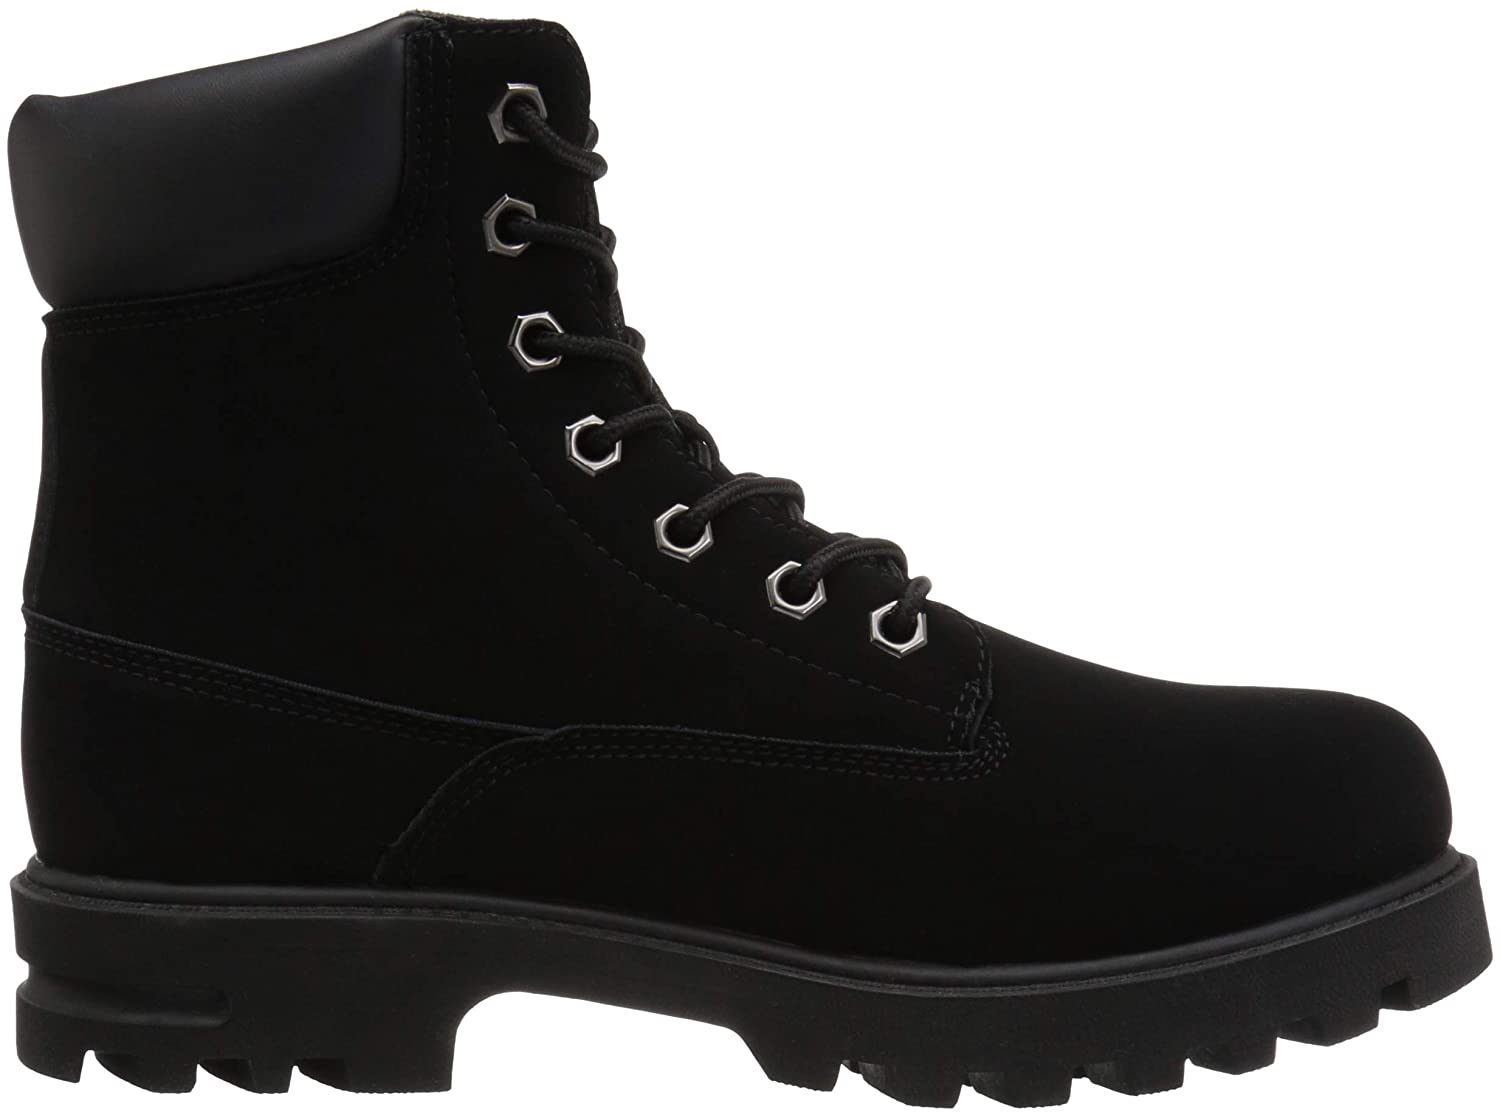 5228bc49a7 Amazon.com | Lugz Kids' Empire Hi Wr Fashion Boot | Boots